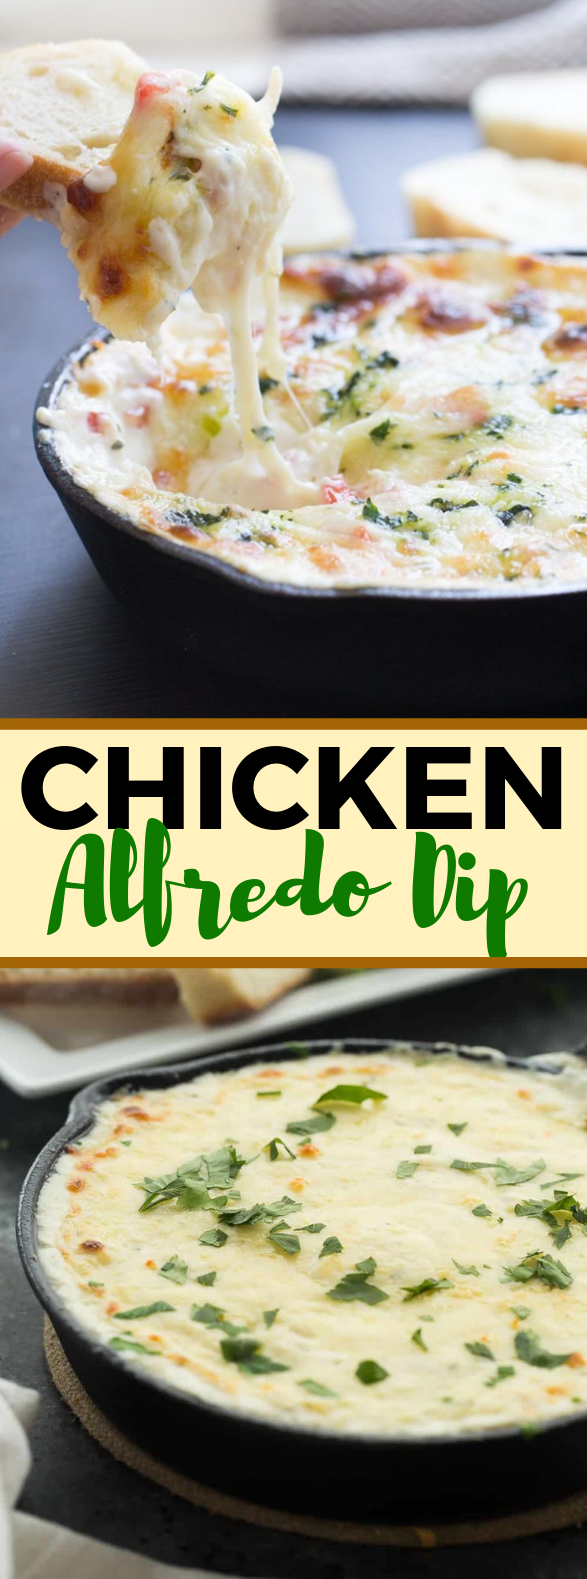 CHICKEN ALFREDO DIP #appetizers #lunch